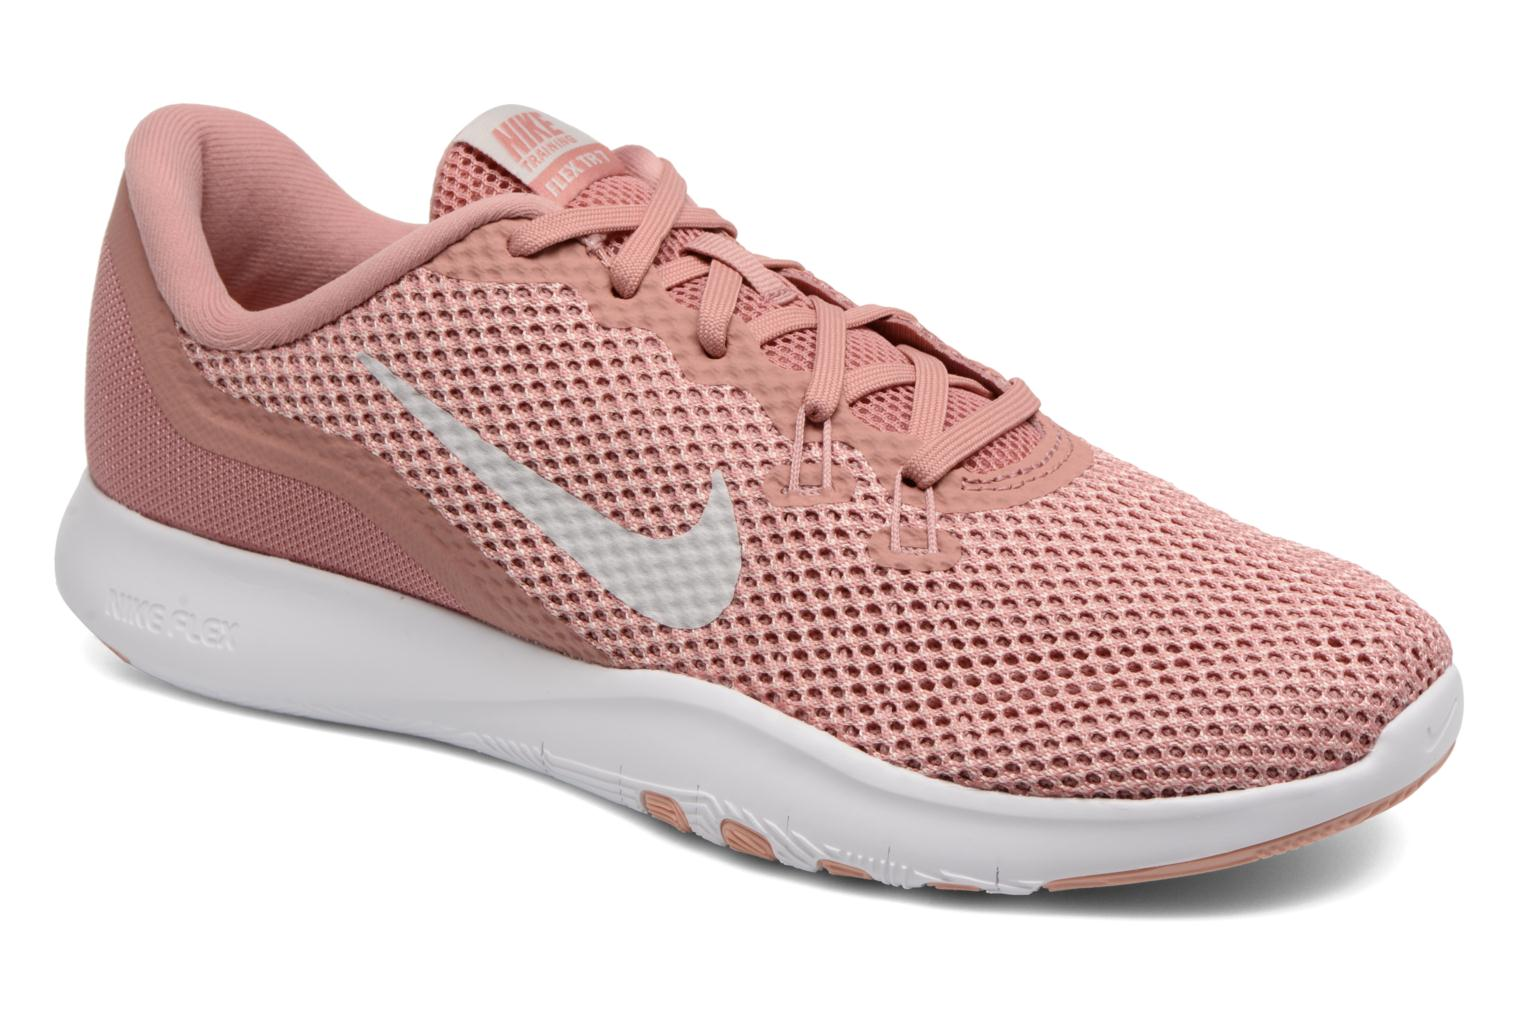 Marques Chaussure femme Nike femme W Nike Flex Trainer 7 Rust Pink/Vast Grey-Coral Stardust